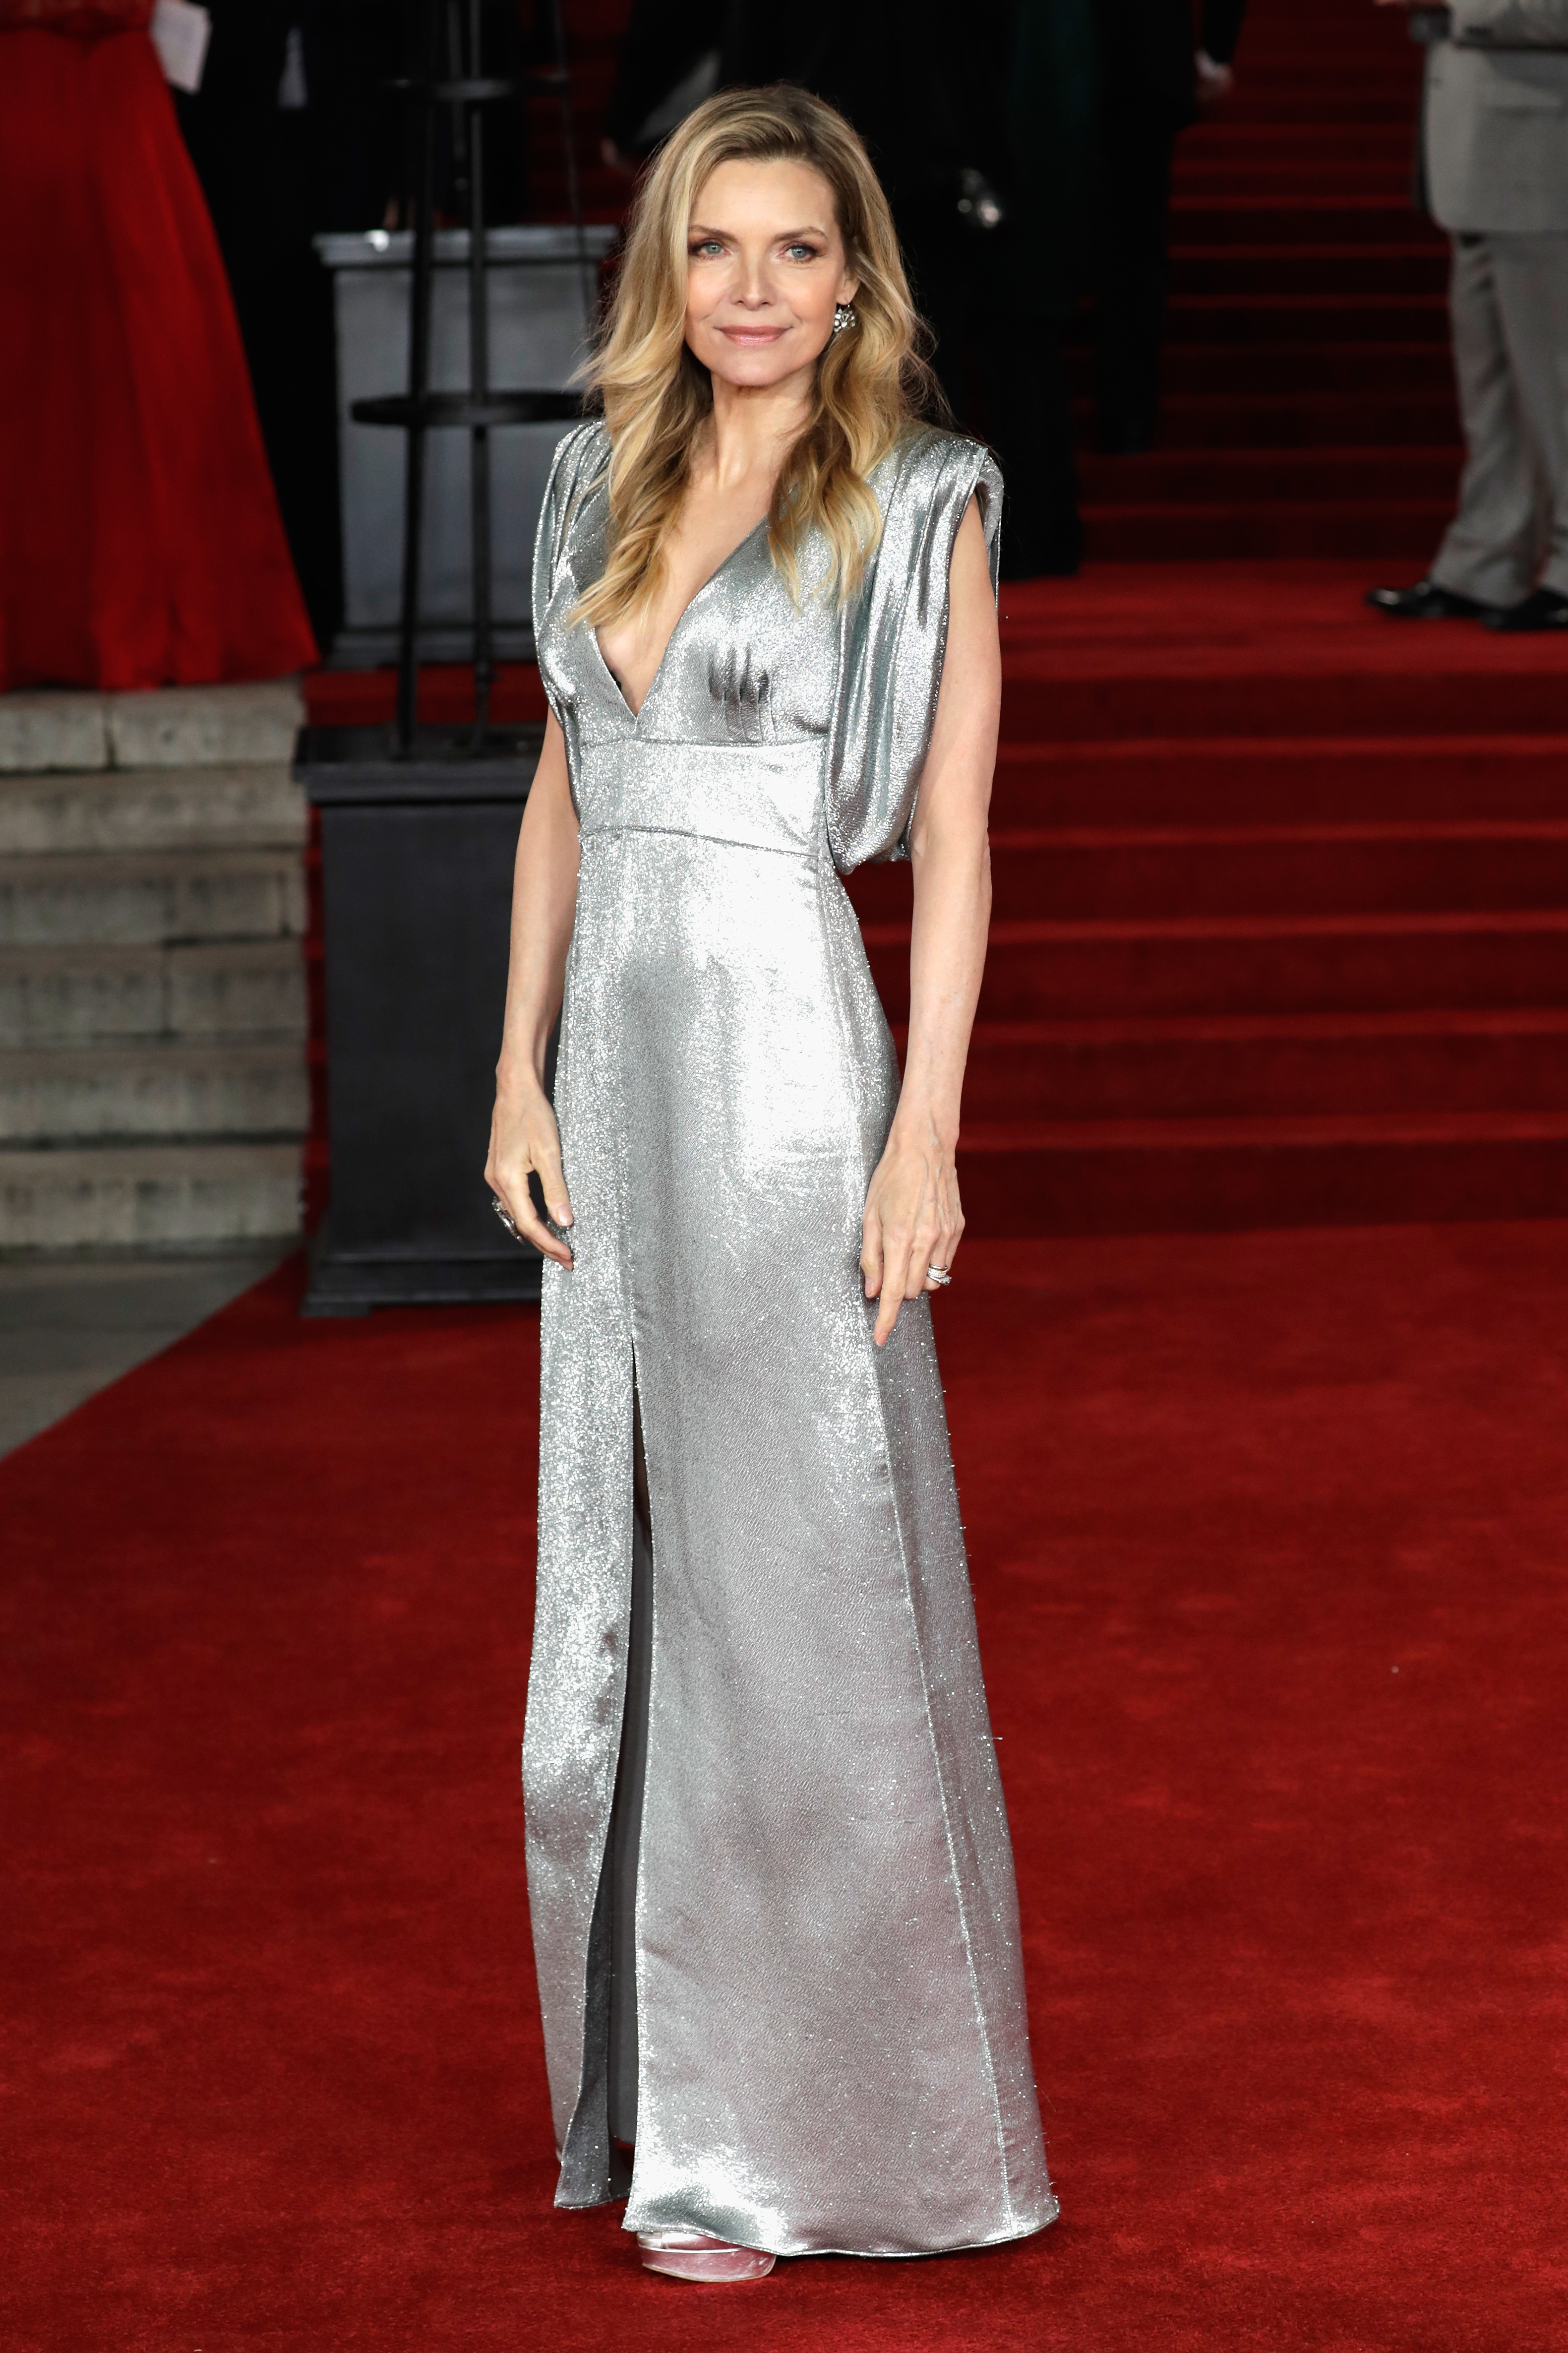 <p>Michelle Pfeiffer looked undeniably incredible at the London premiere of Murder on the Orient Express on the weekend. </p> <p>The Academy-Award shone on the red carpet in a liquid silver Prada gown with a deep V-neck and a slit in the middle, which she complemented with  minimal makeup and loose waves.</p> <p>Pfeiffer's disco ball-inspired gown proved that not only is she capable of still ruling a red carpet at age 59, but  that there is no age limit when it comes to rocking a head-to-toe glitter look.</p> <p>Glitter has been the standout trend this year on the runways where disco balls descended balls on the toes of models at Chanel, Miu Miu and Yves Saint at Paris Fashion Week in March.</p> <p>And with renowned makeup artists such as Pat McGrath and Val Garland bringing glitter into the beauty bag with sparkly lips and shimmery eyelids, this isn't a trend that is exclusive to the wardrobe.</p> <p>Click through to inject some sparkle to your life with some of our favourite glitter pieces that you need to invest in this Spring.</p>